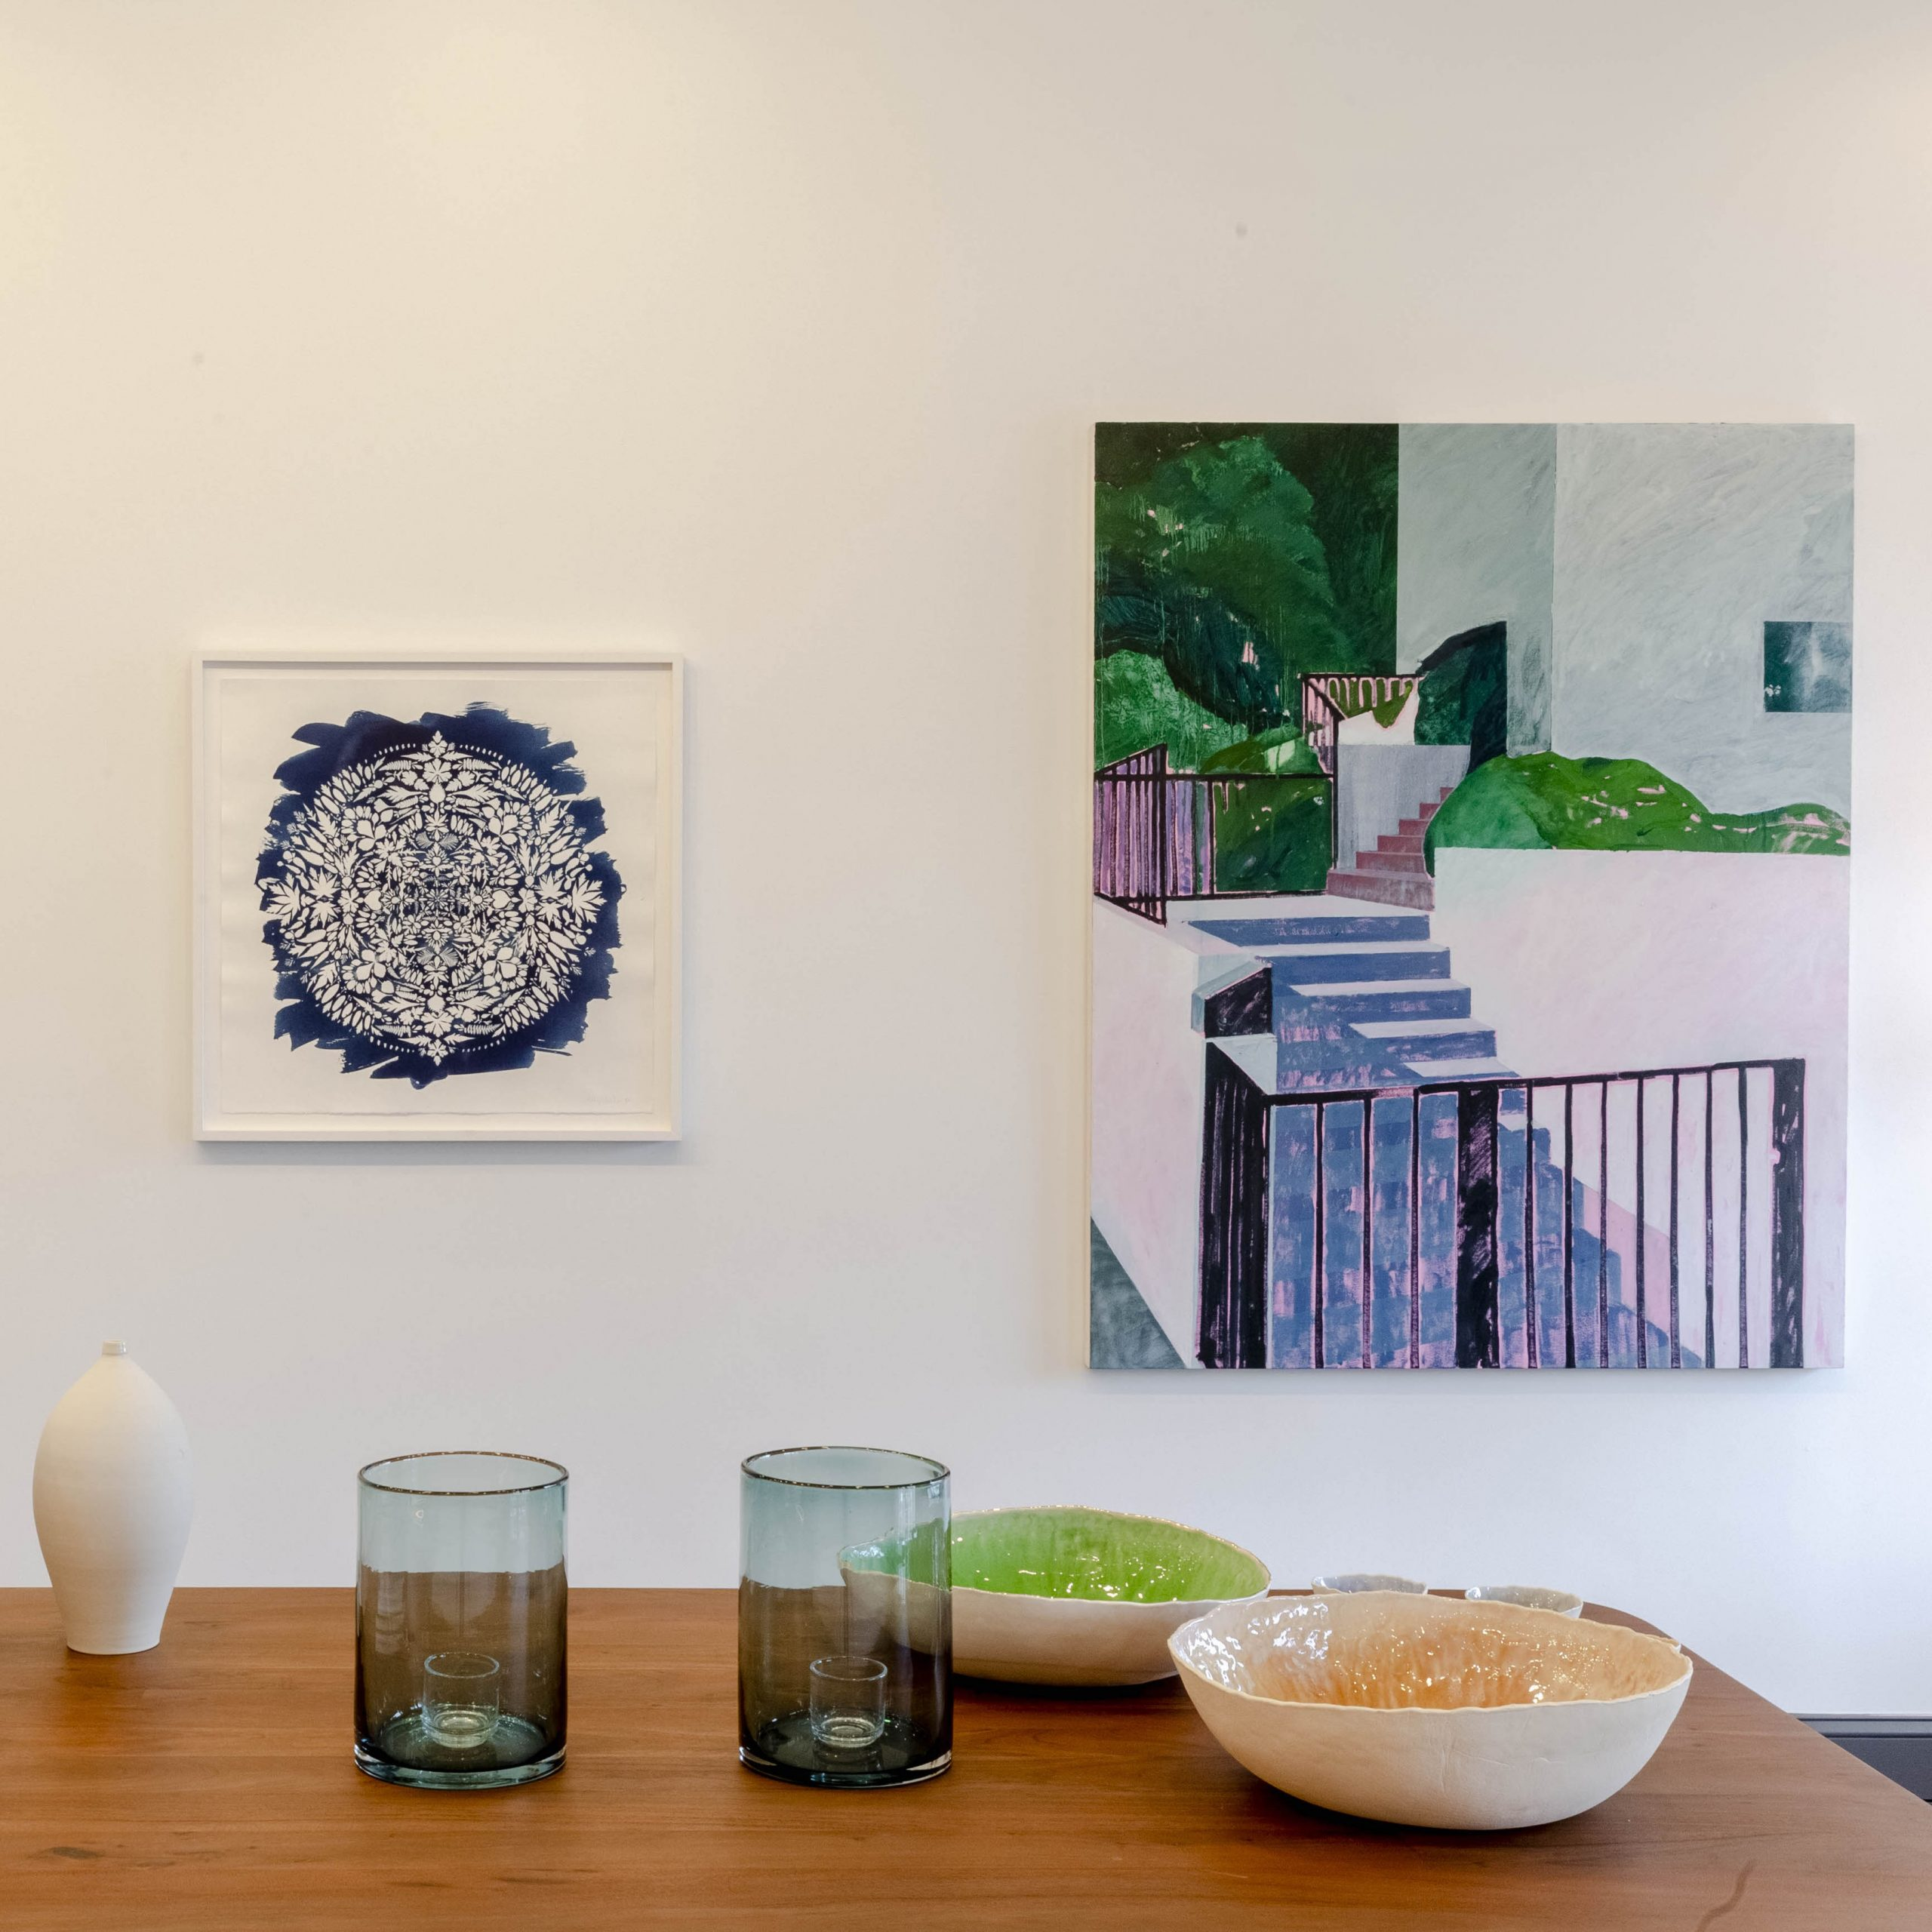 On View at Libbie Avenue